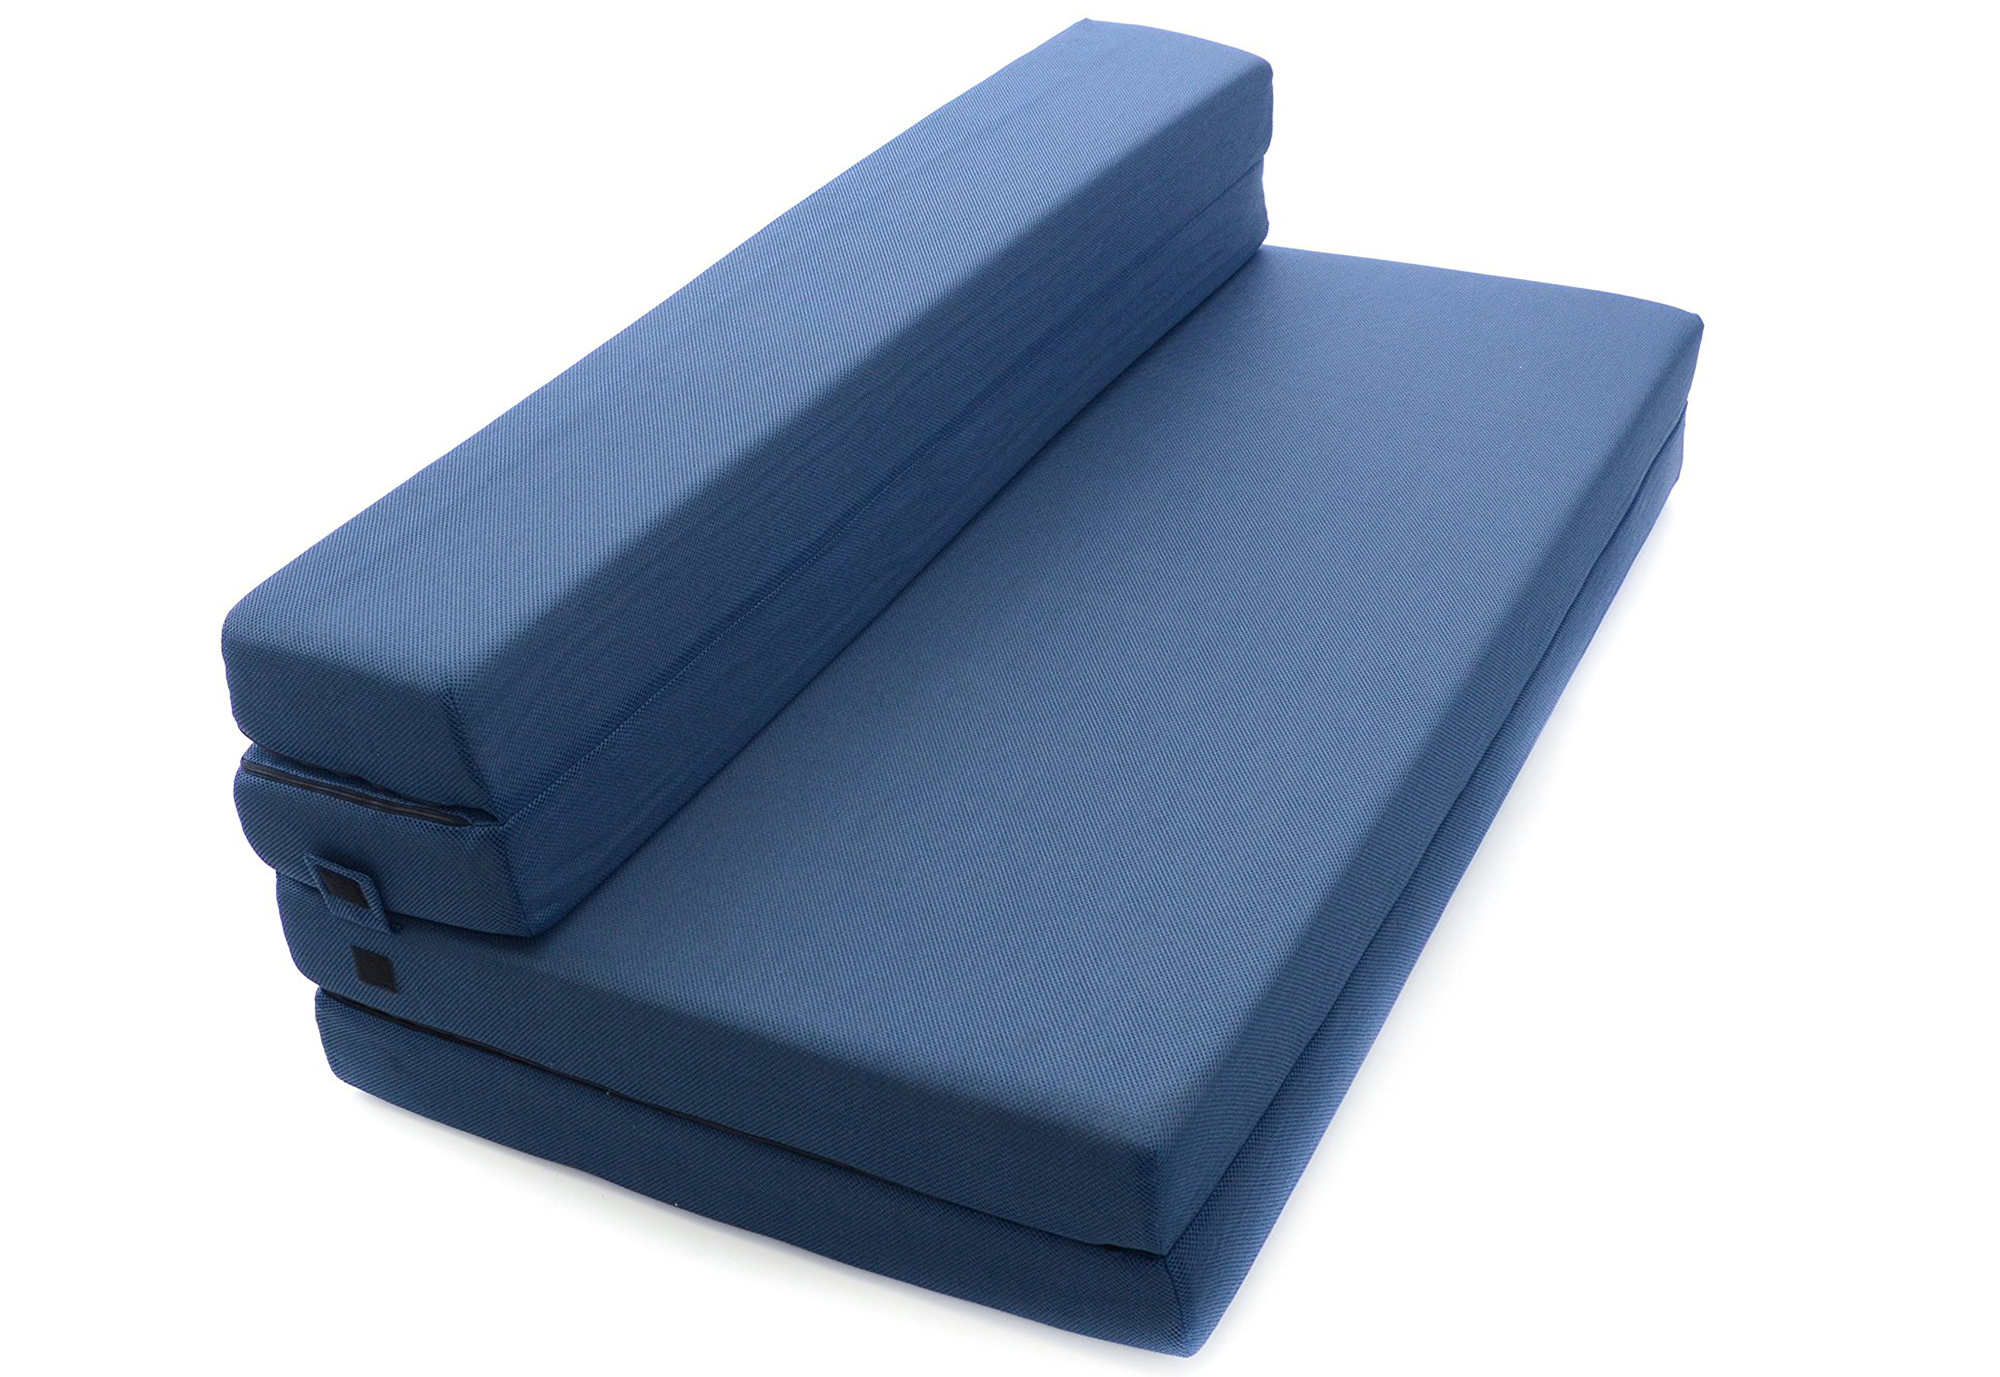 foam sofa sleeper new no credit check best rv sleepers milliard tri fold bed review folding mattress and is one of the for sale right now take a look at our to understand why